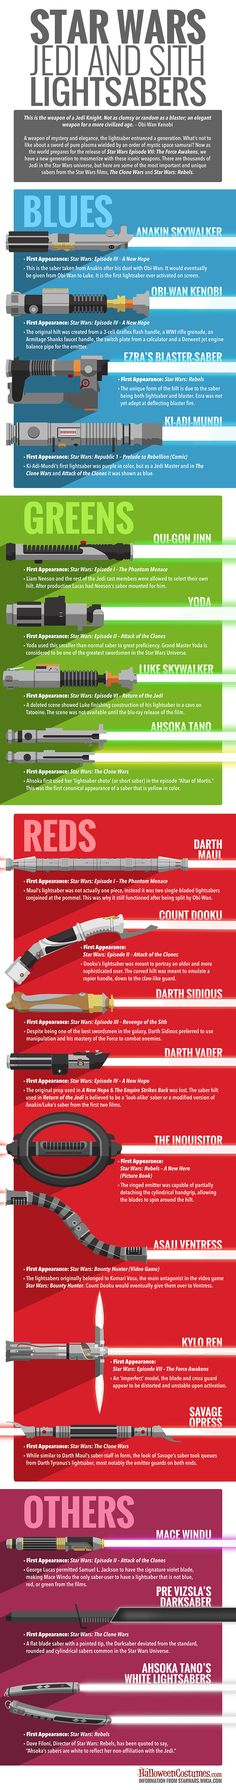 Every Star Wars Lightsaber Design and Its Origins In One Beautiful Infographic | moviepilot.com